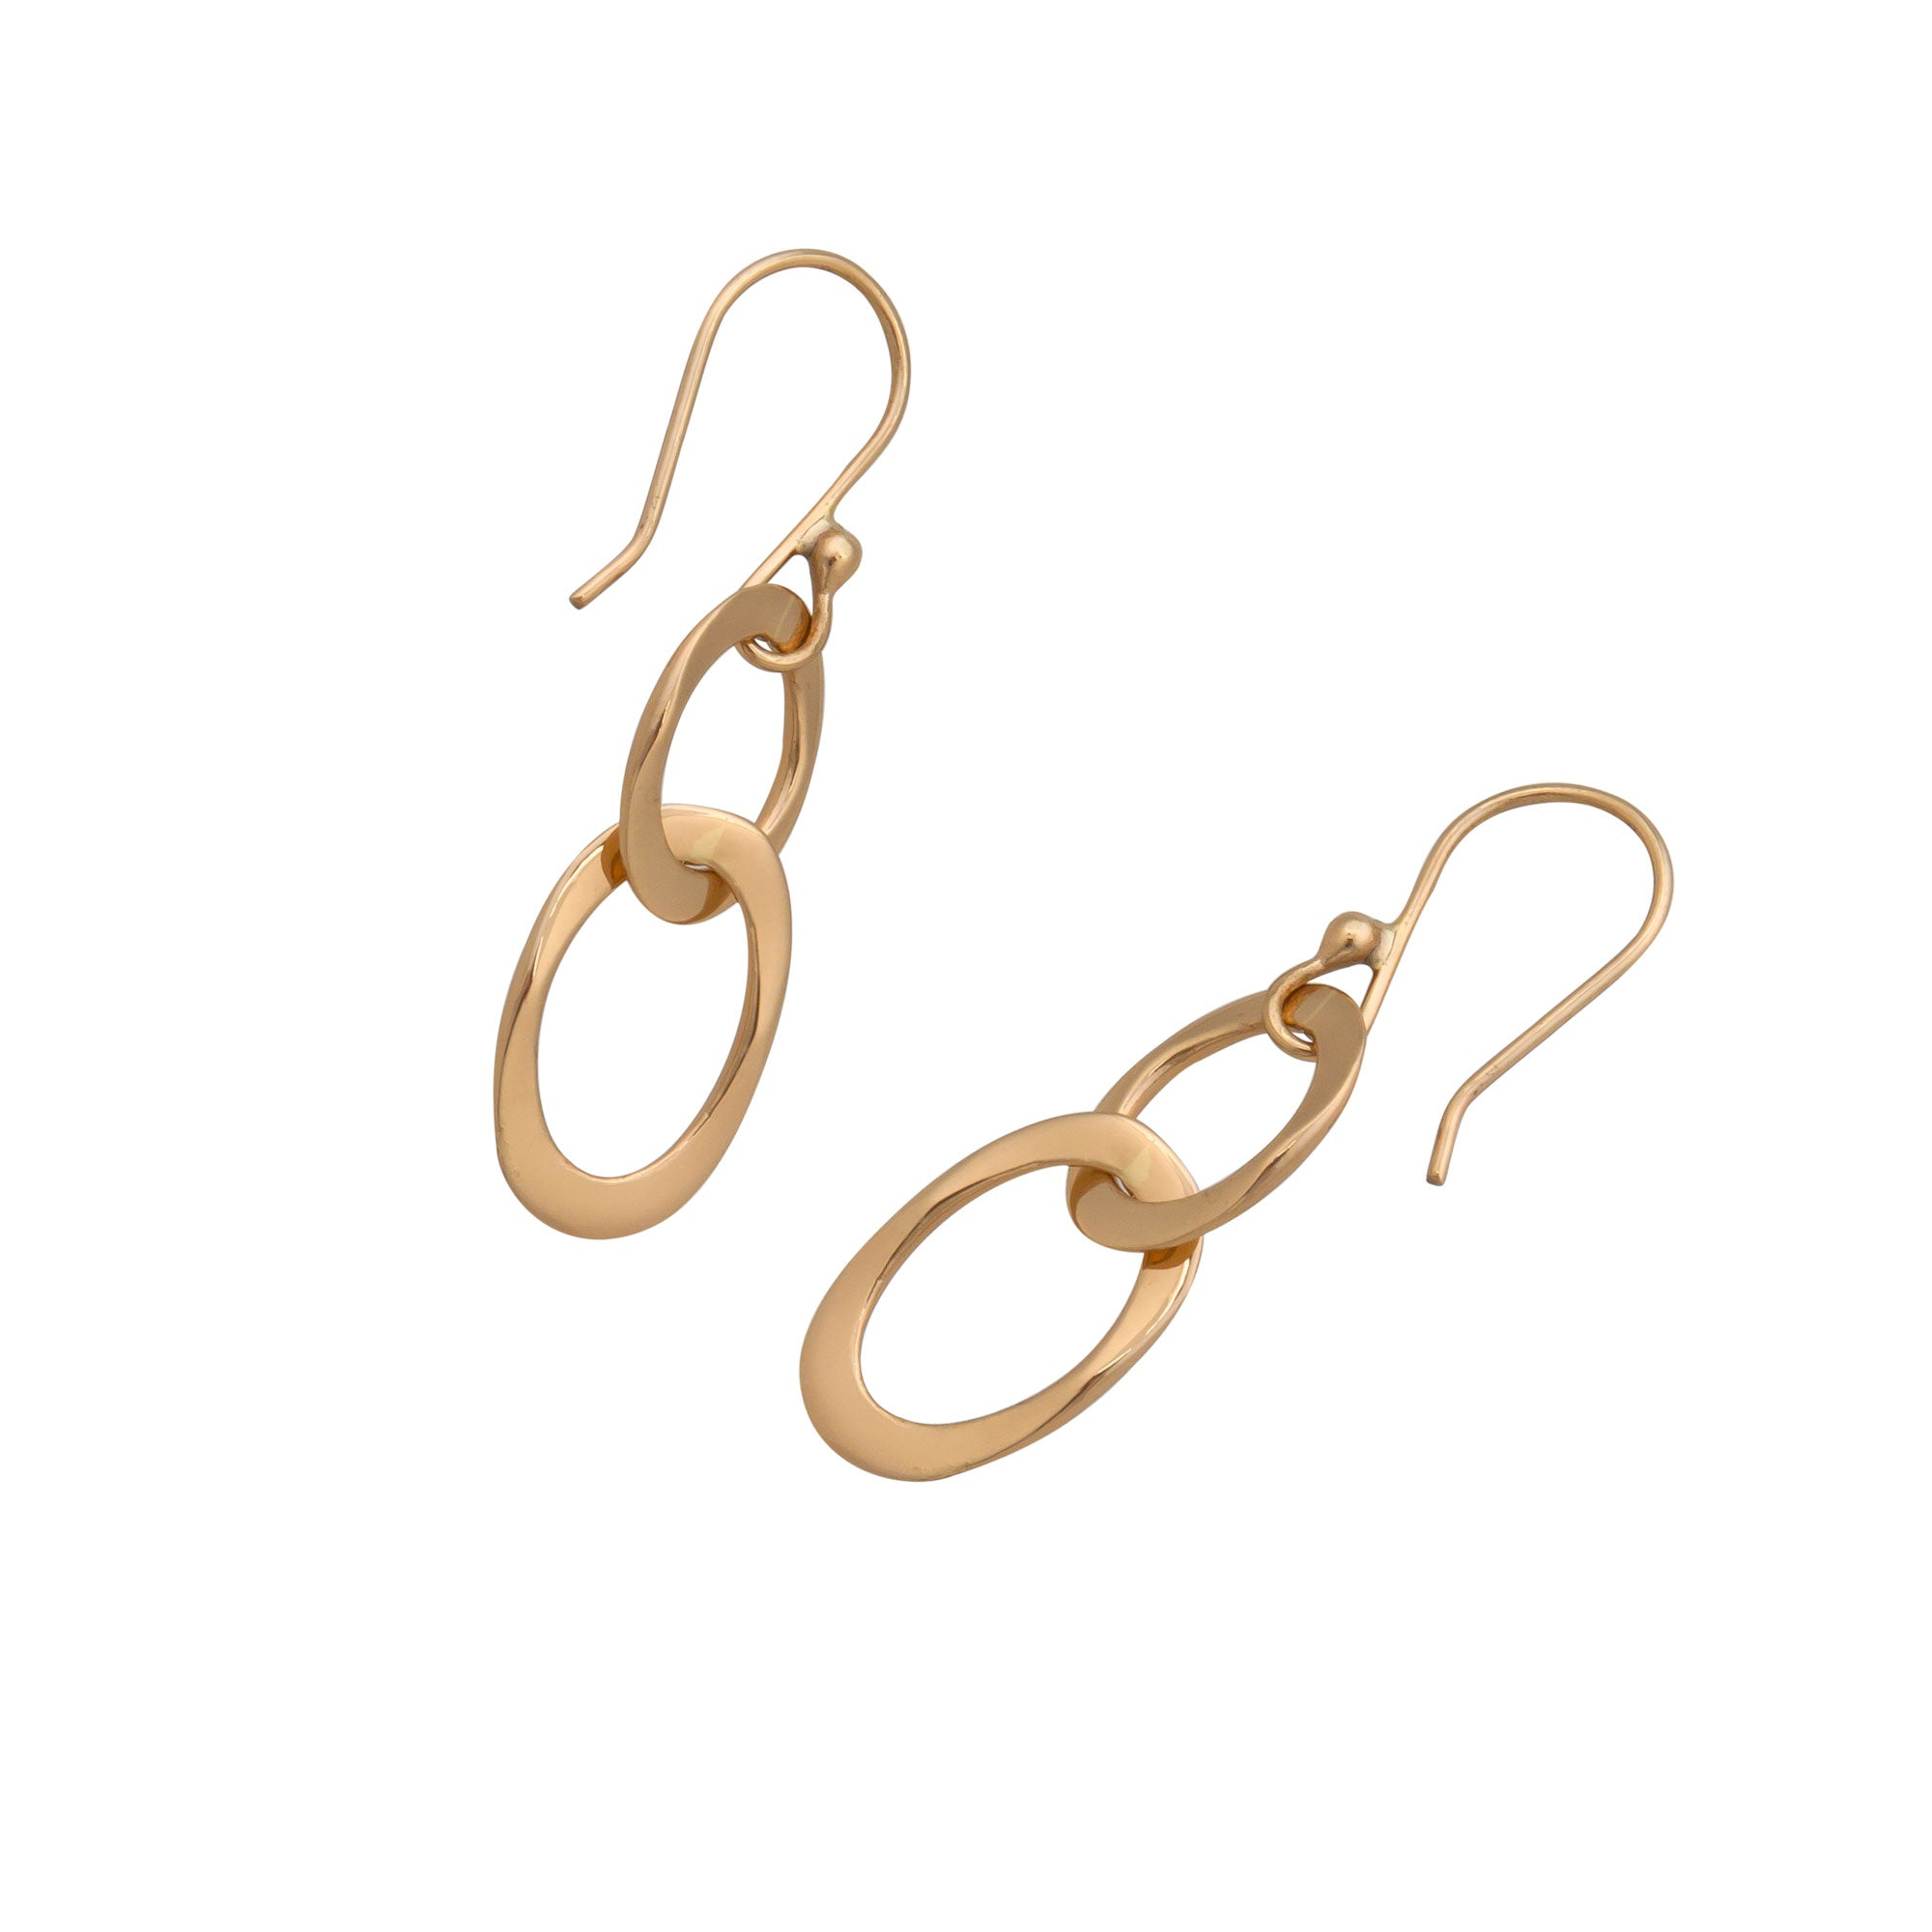 Alchemia Lightweight Chain Link Earrings | Charles Albert Jewelry